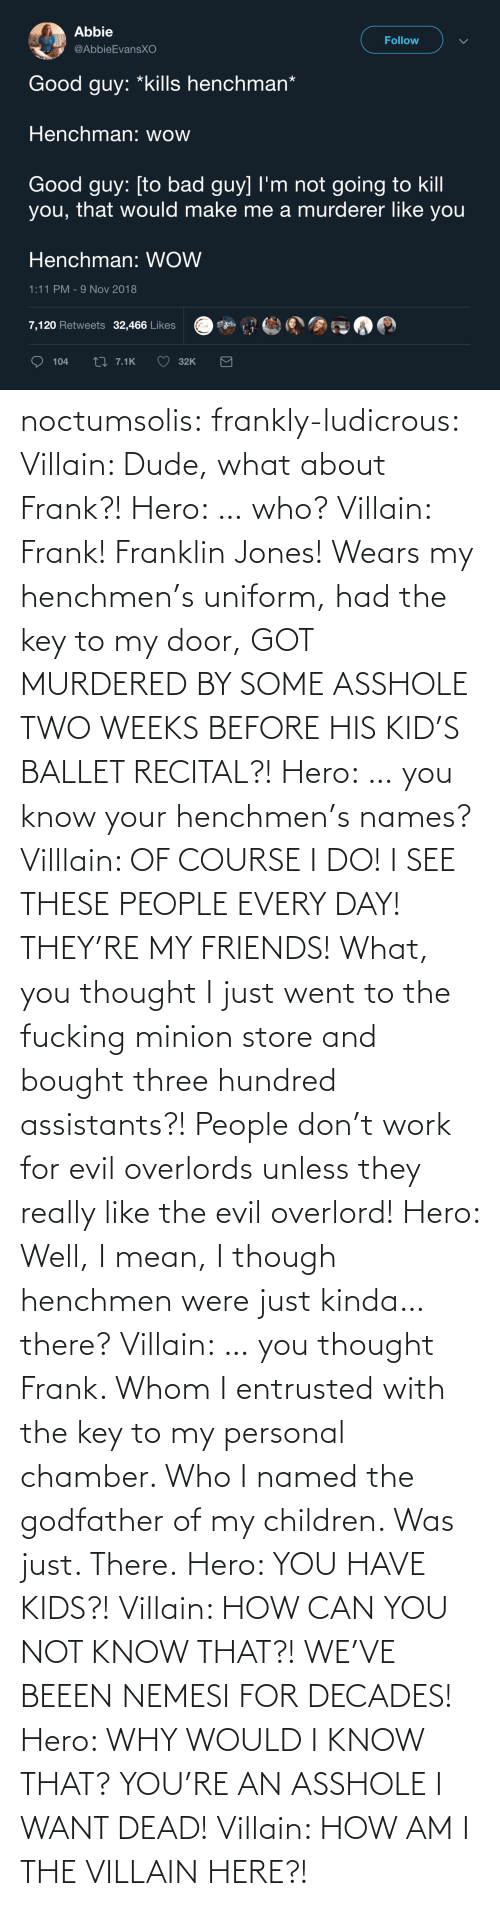 personal: noctumsolis: frankly-ludicrous:  Villain: Dude, what about Frank?! Hero: … who? Villain: Frank! Franklin Jones! Wears my henchmen's uniform, had the key to my door, GOT MURDERED BY SOME ASSHOLE TWO WEEKS BEFORE HIS KID'S BALLET RECITAL?! Hero: … you know your henchmen's names? Villlain: OF COURSE I DO! I SEE THESE PEOPLE EVERY DAY! THEY'RE MY FRIENDS! What, you thought I just went to the fucking minion store and bought three hundred assistants?! People don't work for evil overlords unless they really like the evil overlord! Hero: Well, I mean, I though henchmen were just kinda… there? Villain: … you thought Frank. Whom I entrusted with the key to my personal chamber. Who I named the godfather of my children. Was just. There. Hero: YOU HAVE KIDS?! Villain: HOW CAN YOU NOT KNOW THAT?! WE'VE BEEEN NEMESI FOR DECADES! Hero: WHY WOULD I KNOW THAT? YOU'RE AN ASSHOLE I WANT DEAD! Villain: HOW AM I THE VILLAIN HERE?!